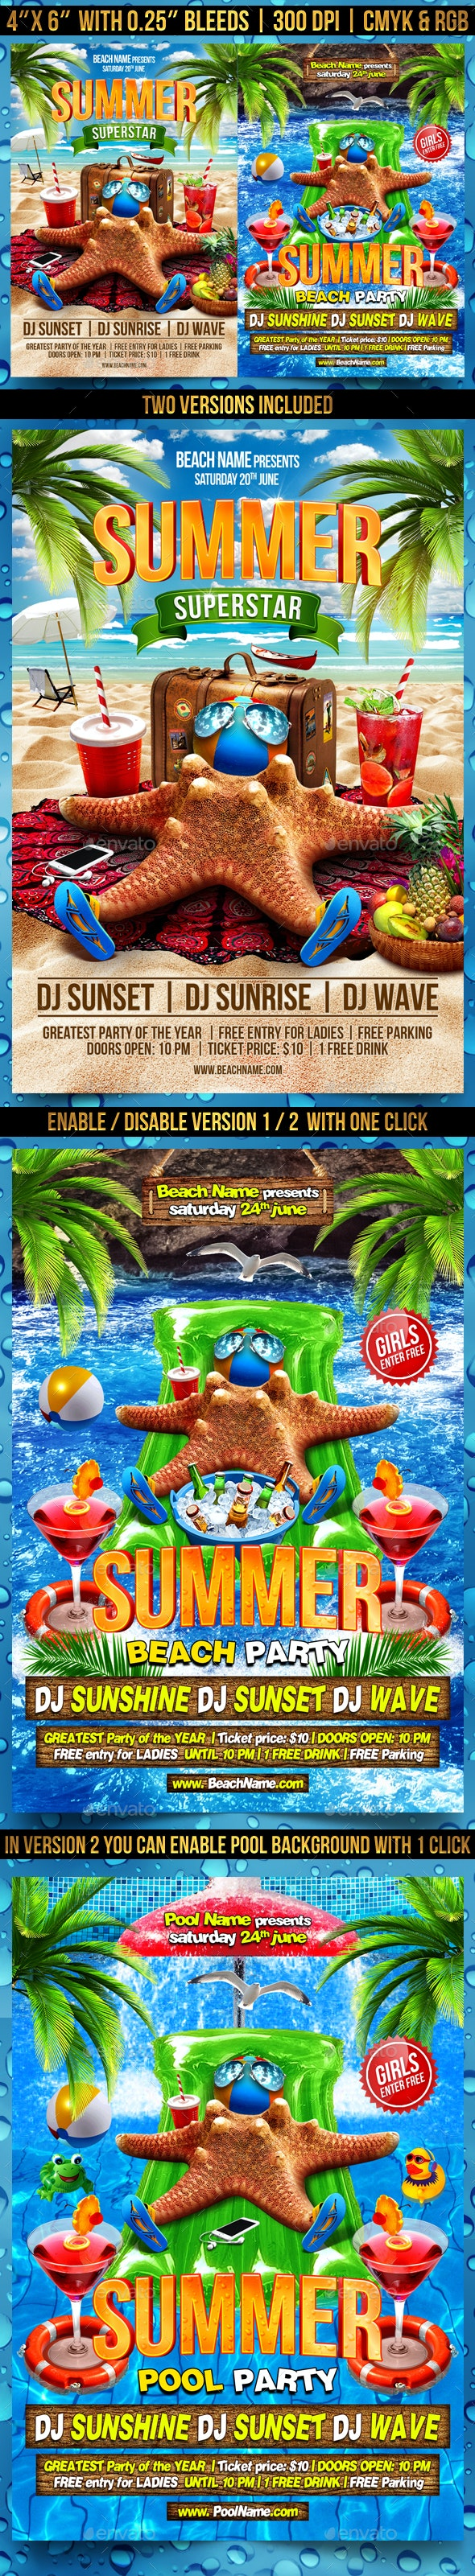 Summer Superstar Flyer Template - Clubs & Parties Events